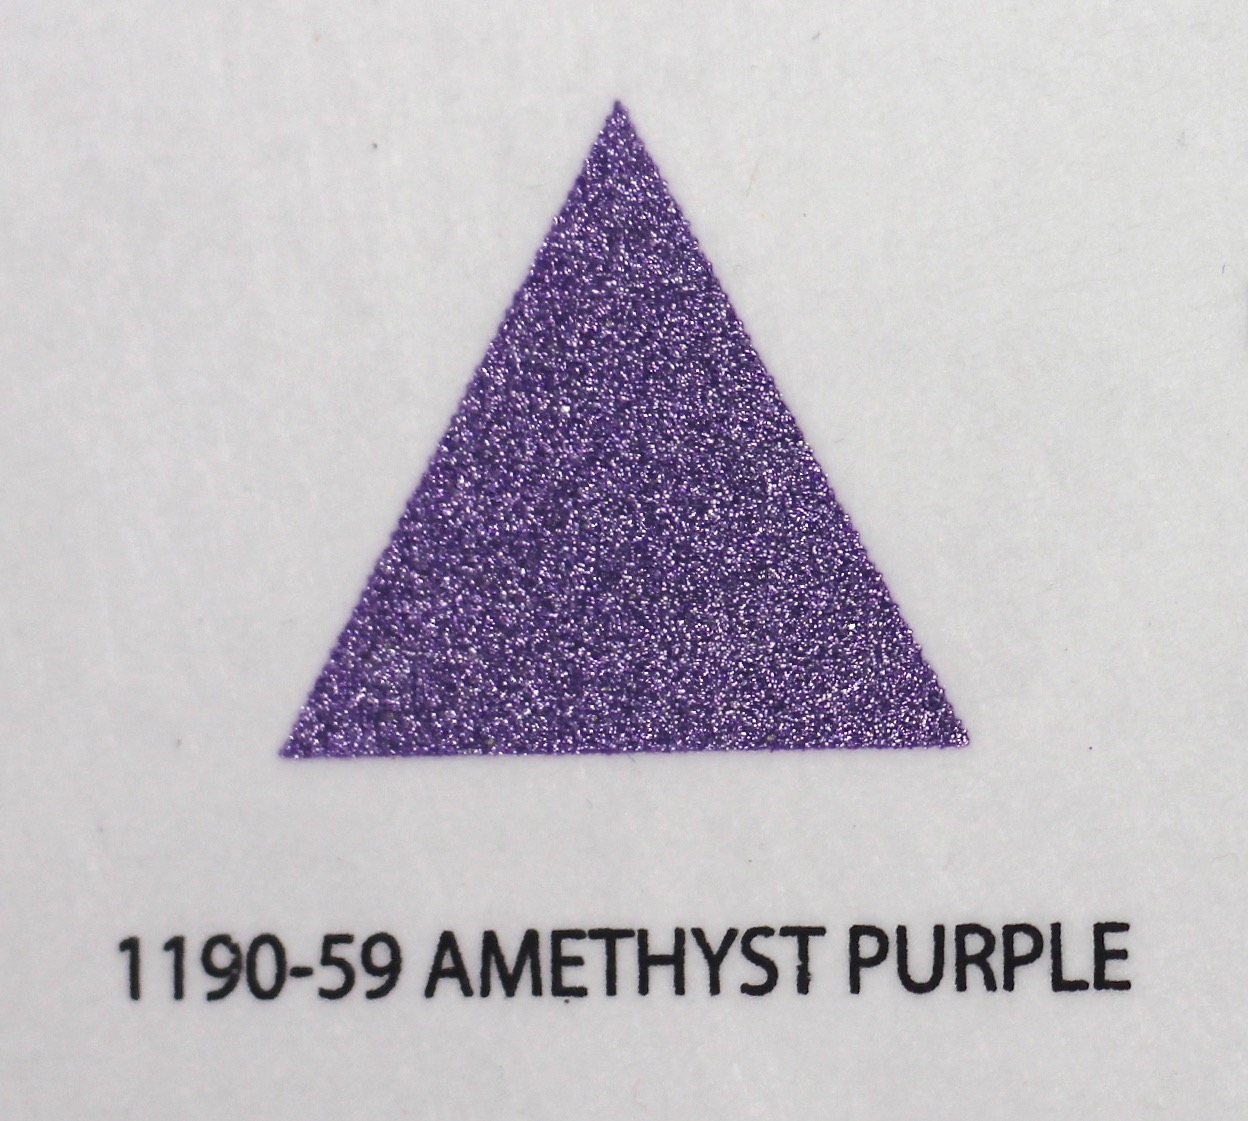 1190-59 Amethyst Purple